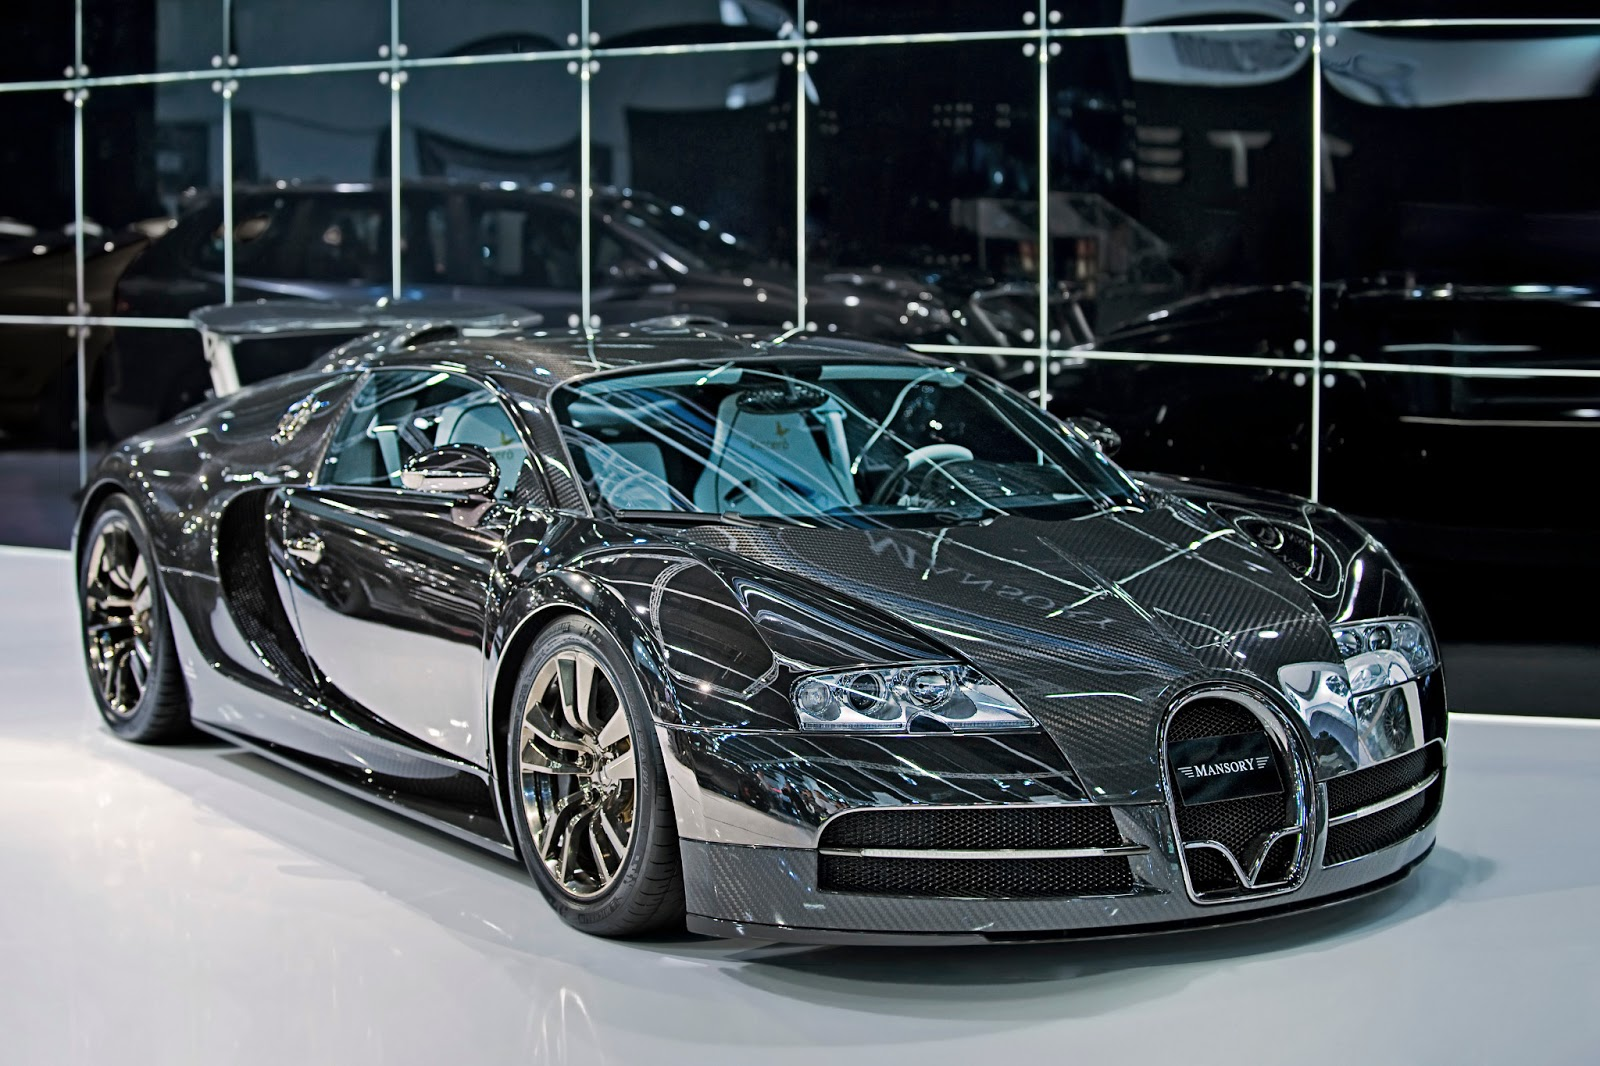 Bugatti Veyron Wallpapers - Exotic Color